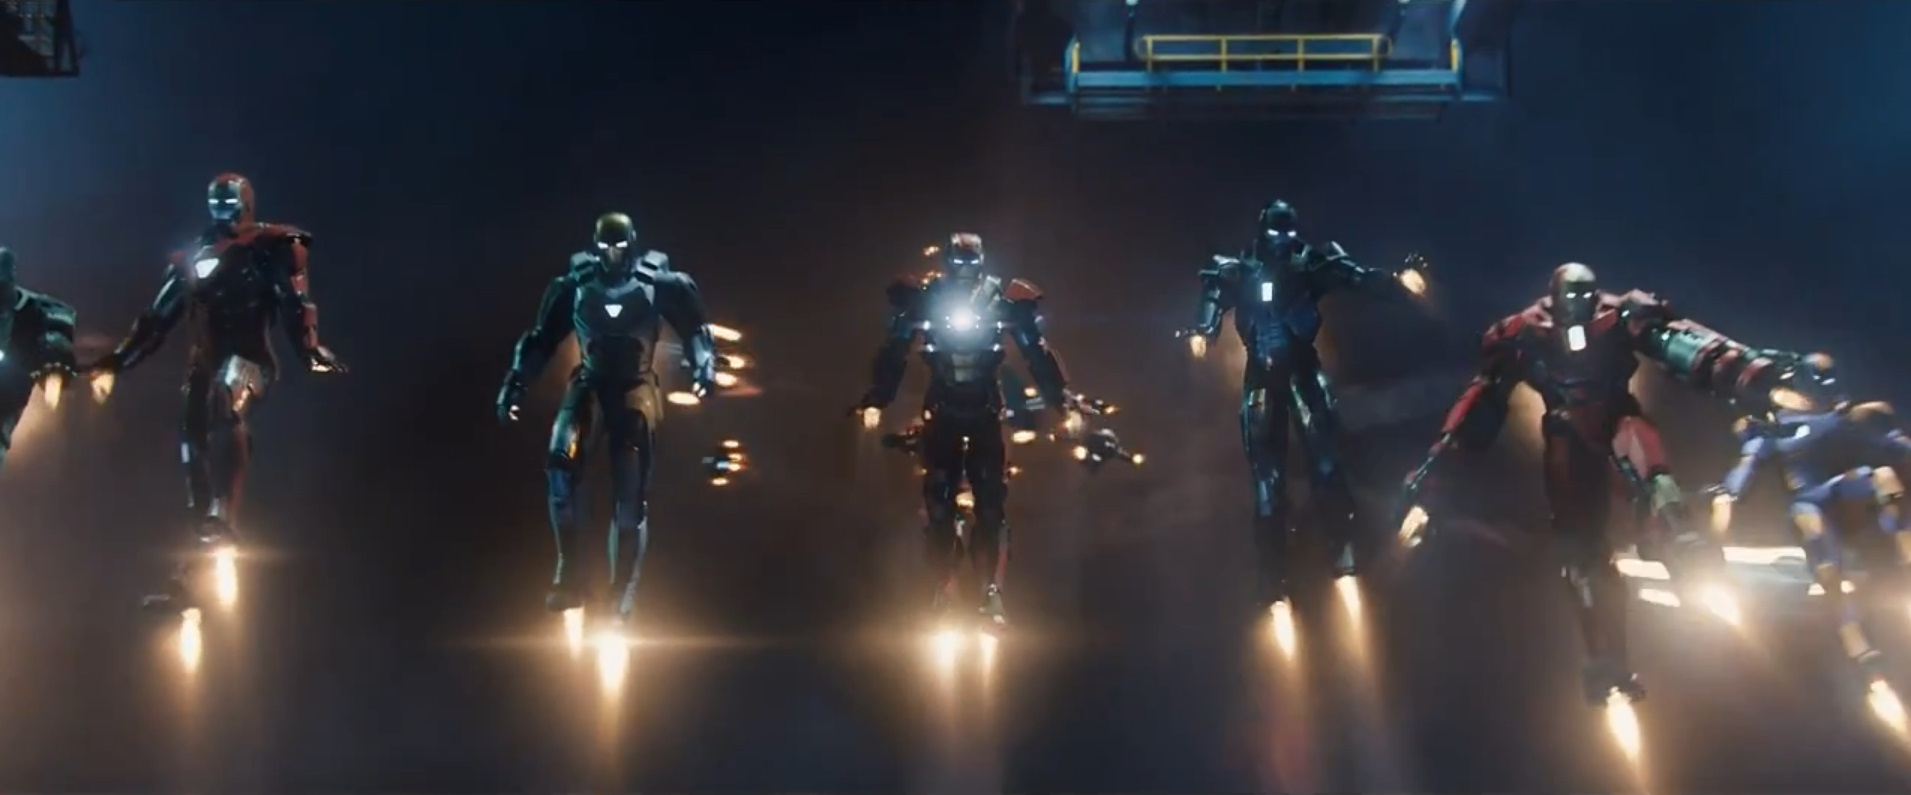 Iron Man 3 Trailer Screen Grabs And Wallpapers Image